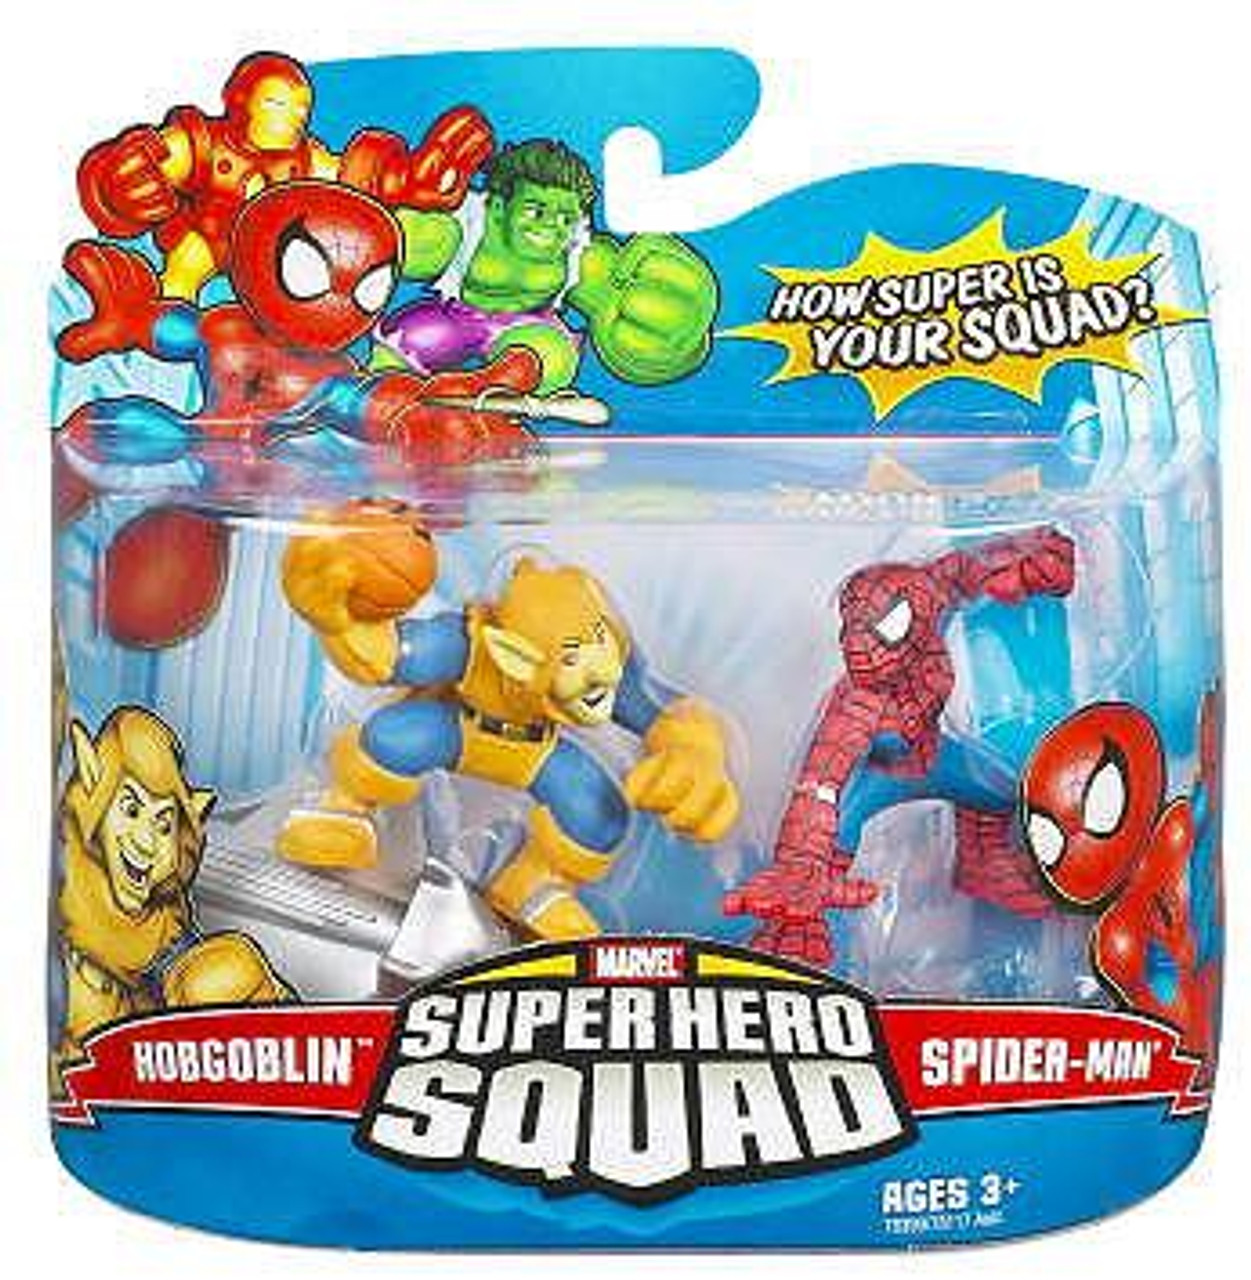 Marvel Super Hero Squad Series 8 Hobgoblin & Spider-Man Action Figure 2-Pack